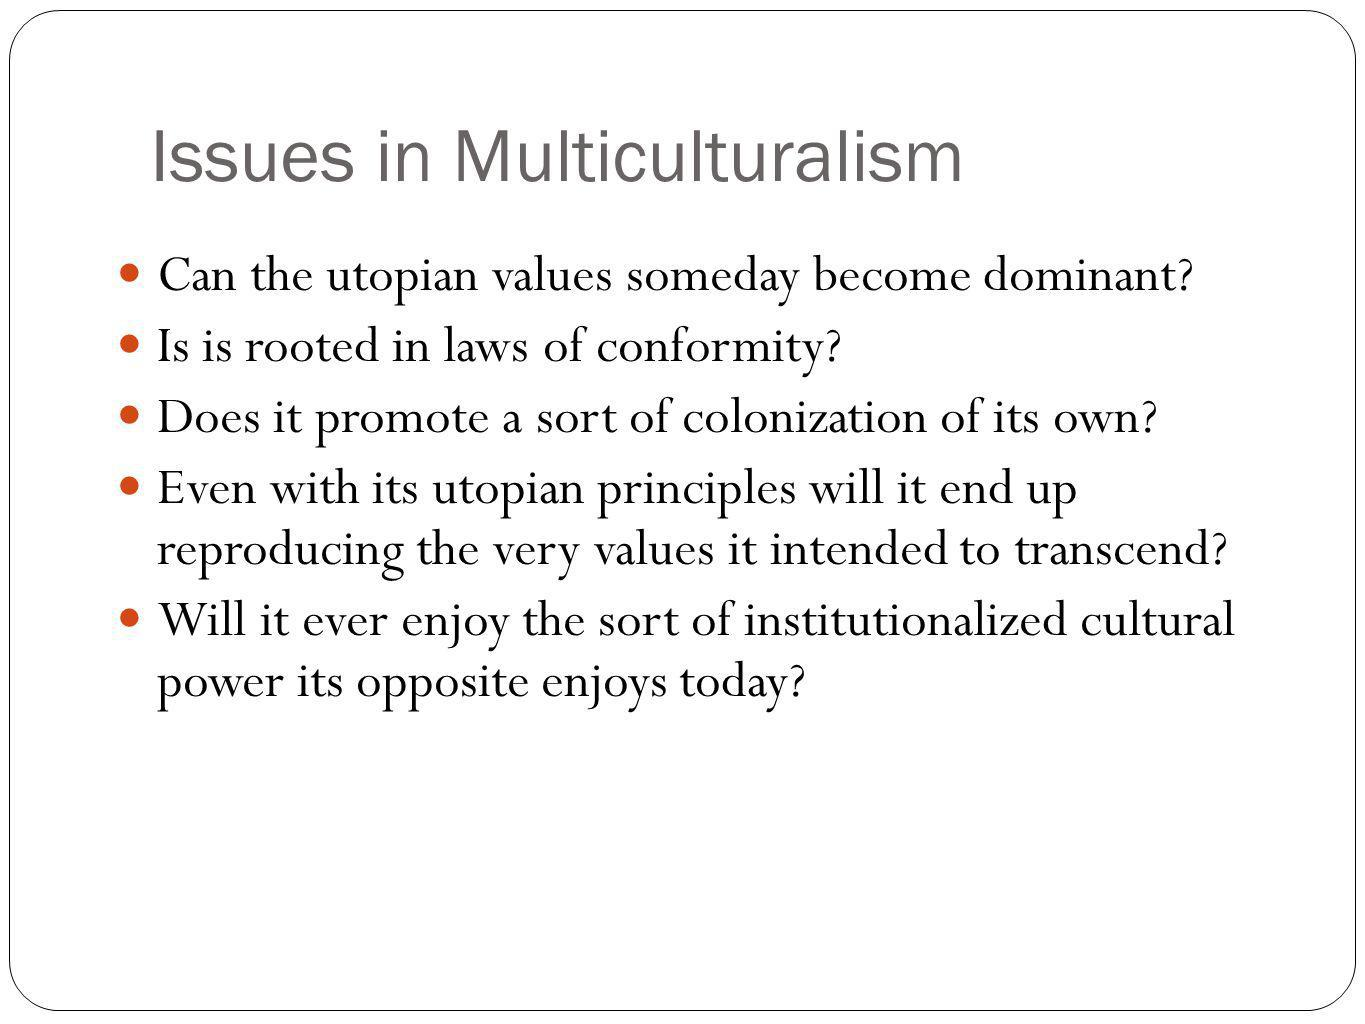 Issues in Multiculturalism Can the utopian values someday become dominant? Is is rooted in laws of conformity? Does it promote a sort of colonization